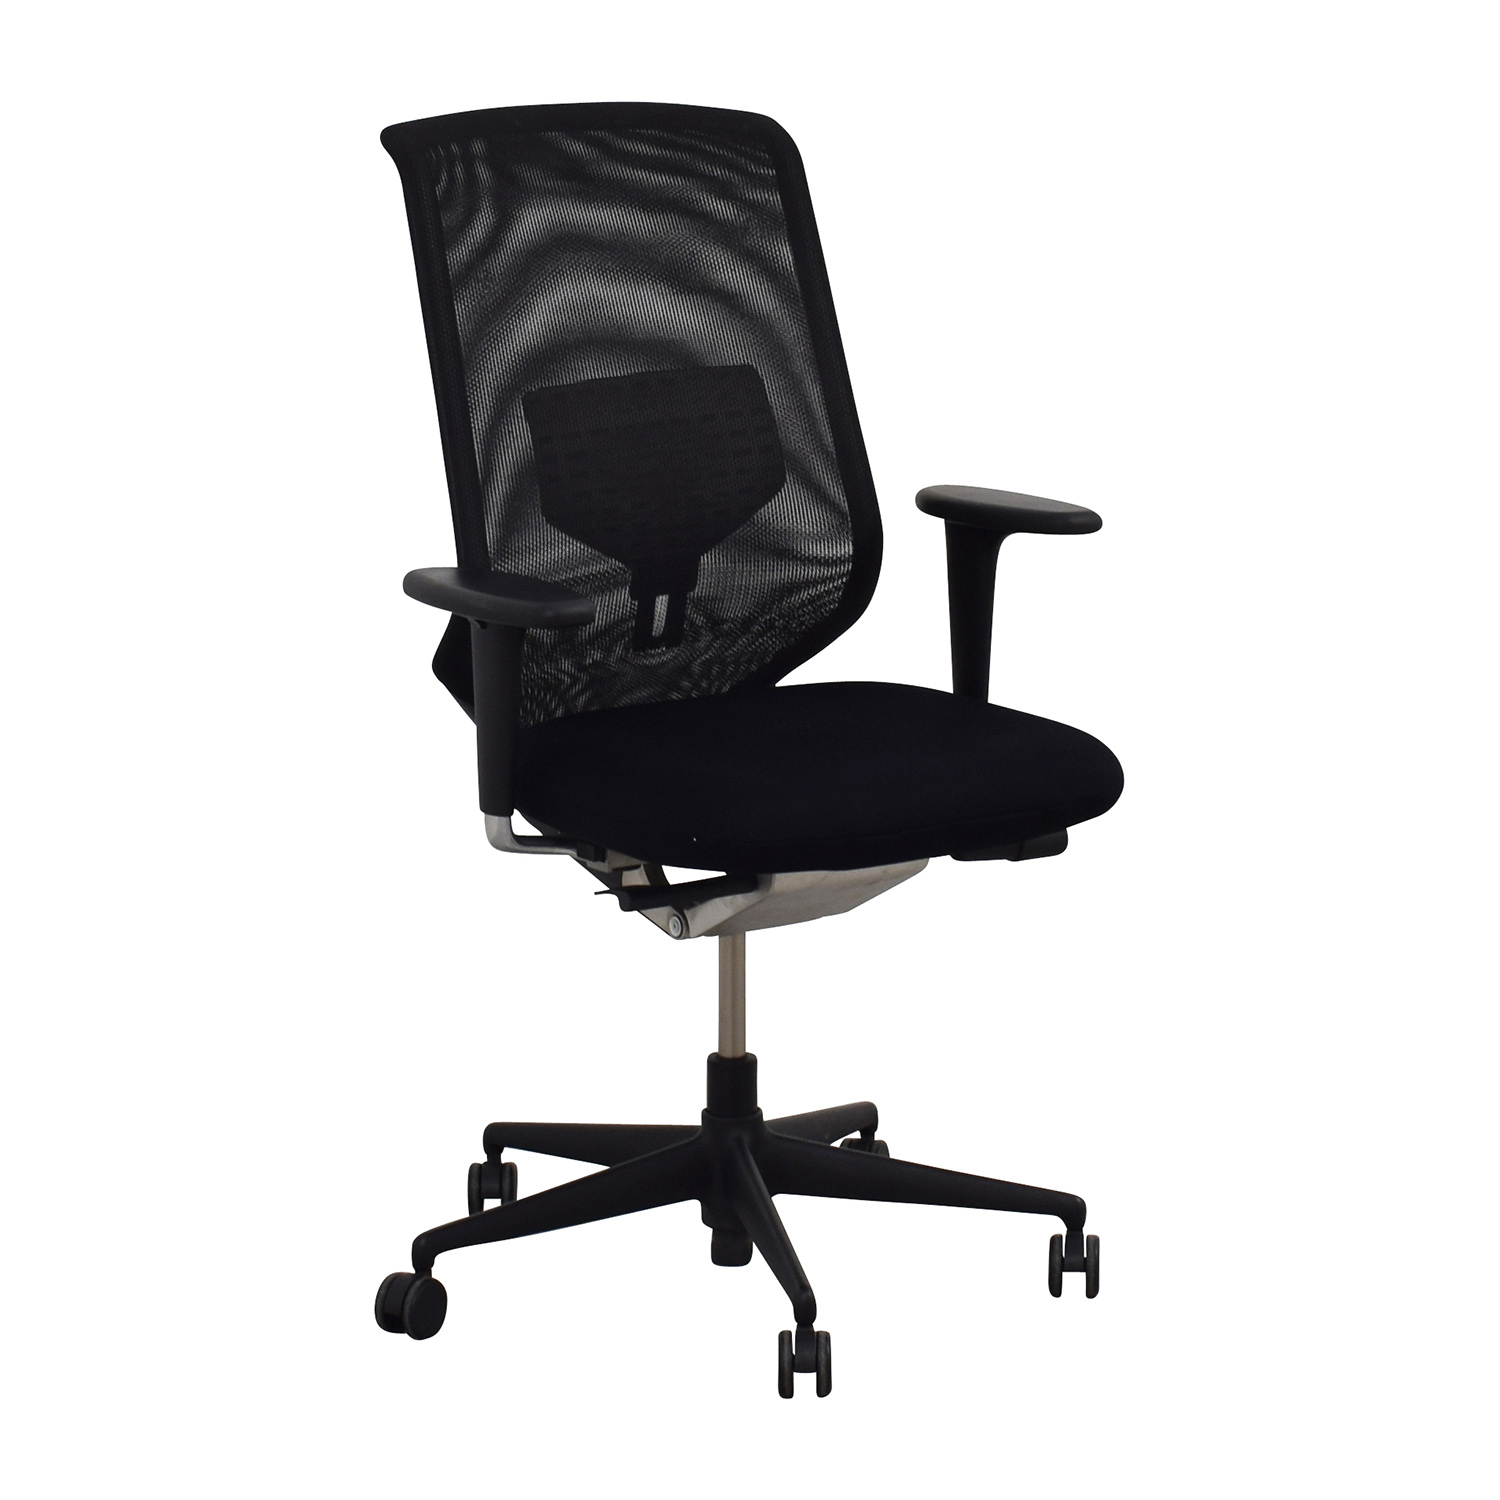 Vitra Vitra Meda Black Chair Home Office Chairs